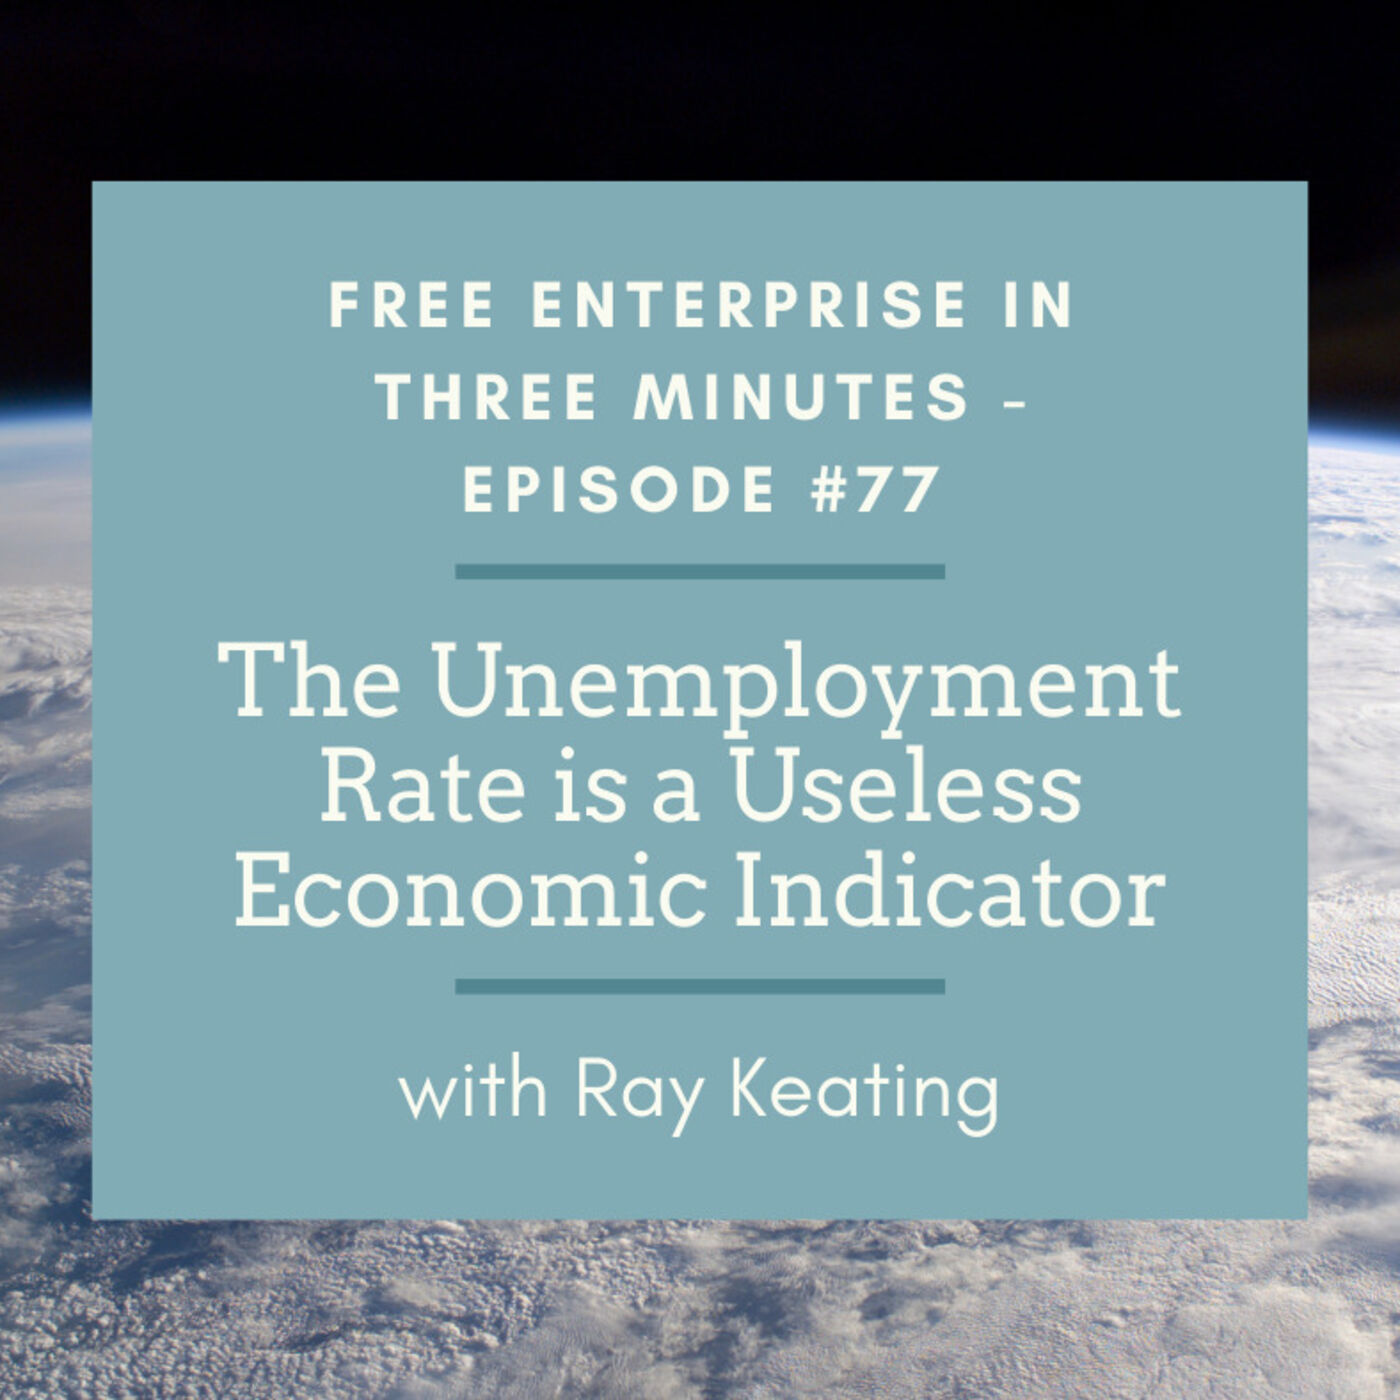 Episode #77: The Unemployment Rate is a Useless Economic Indicator